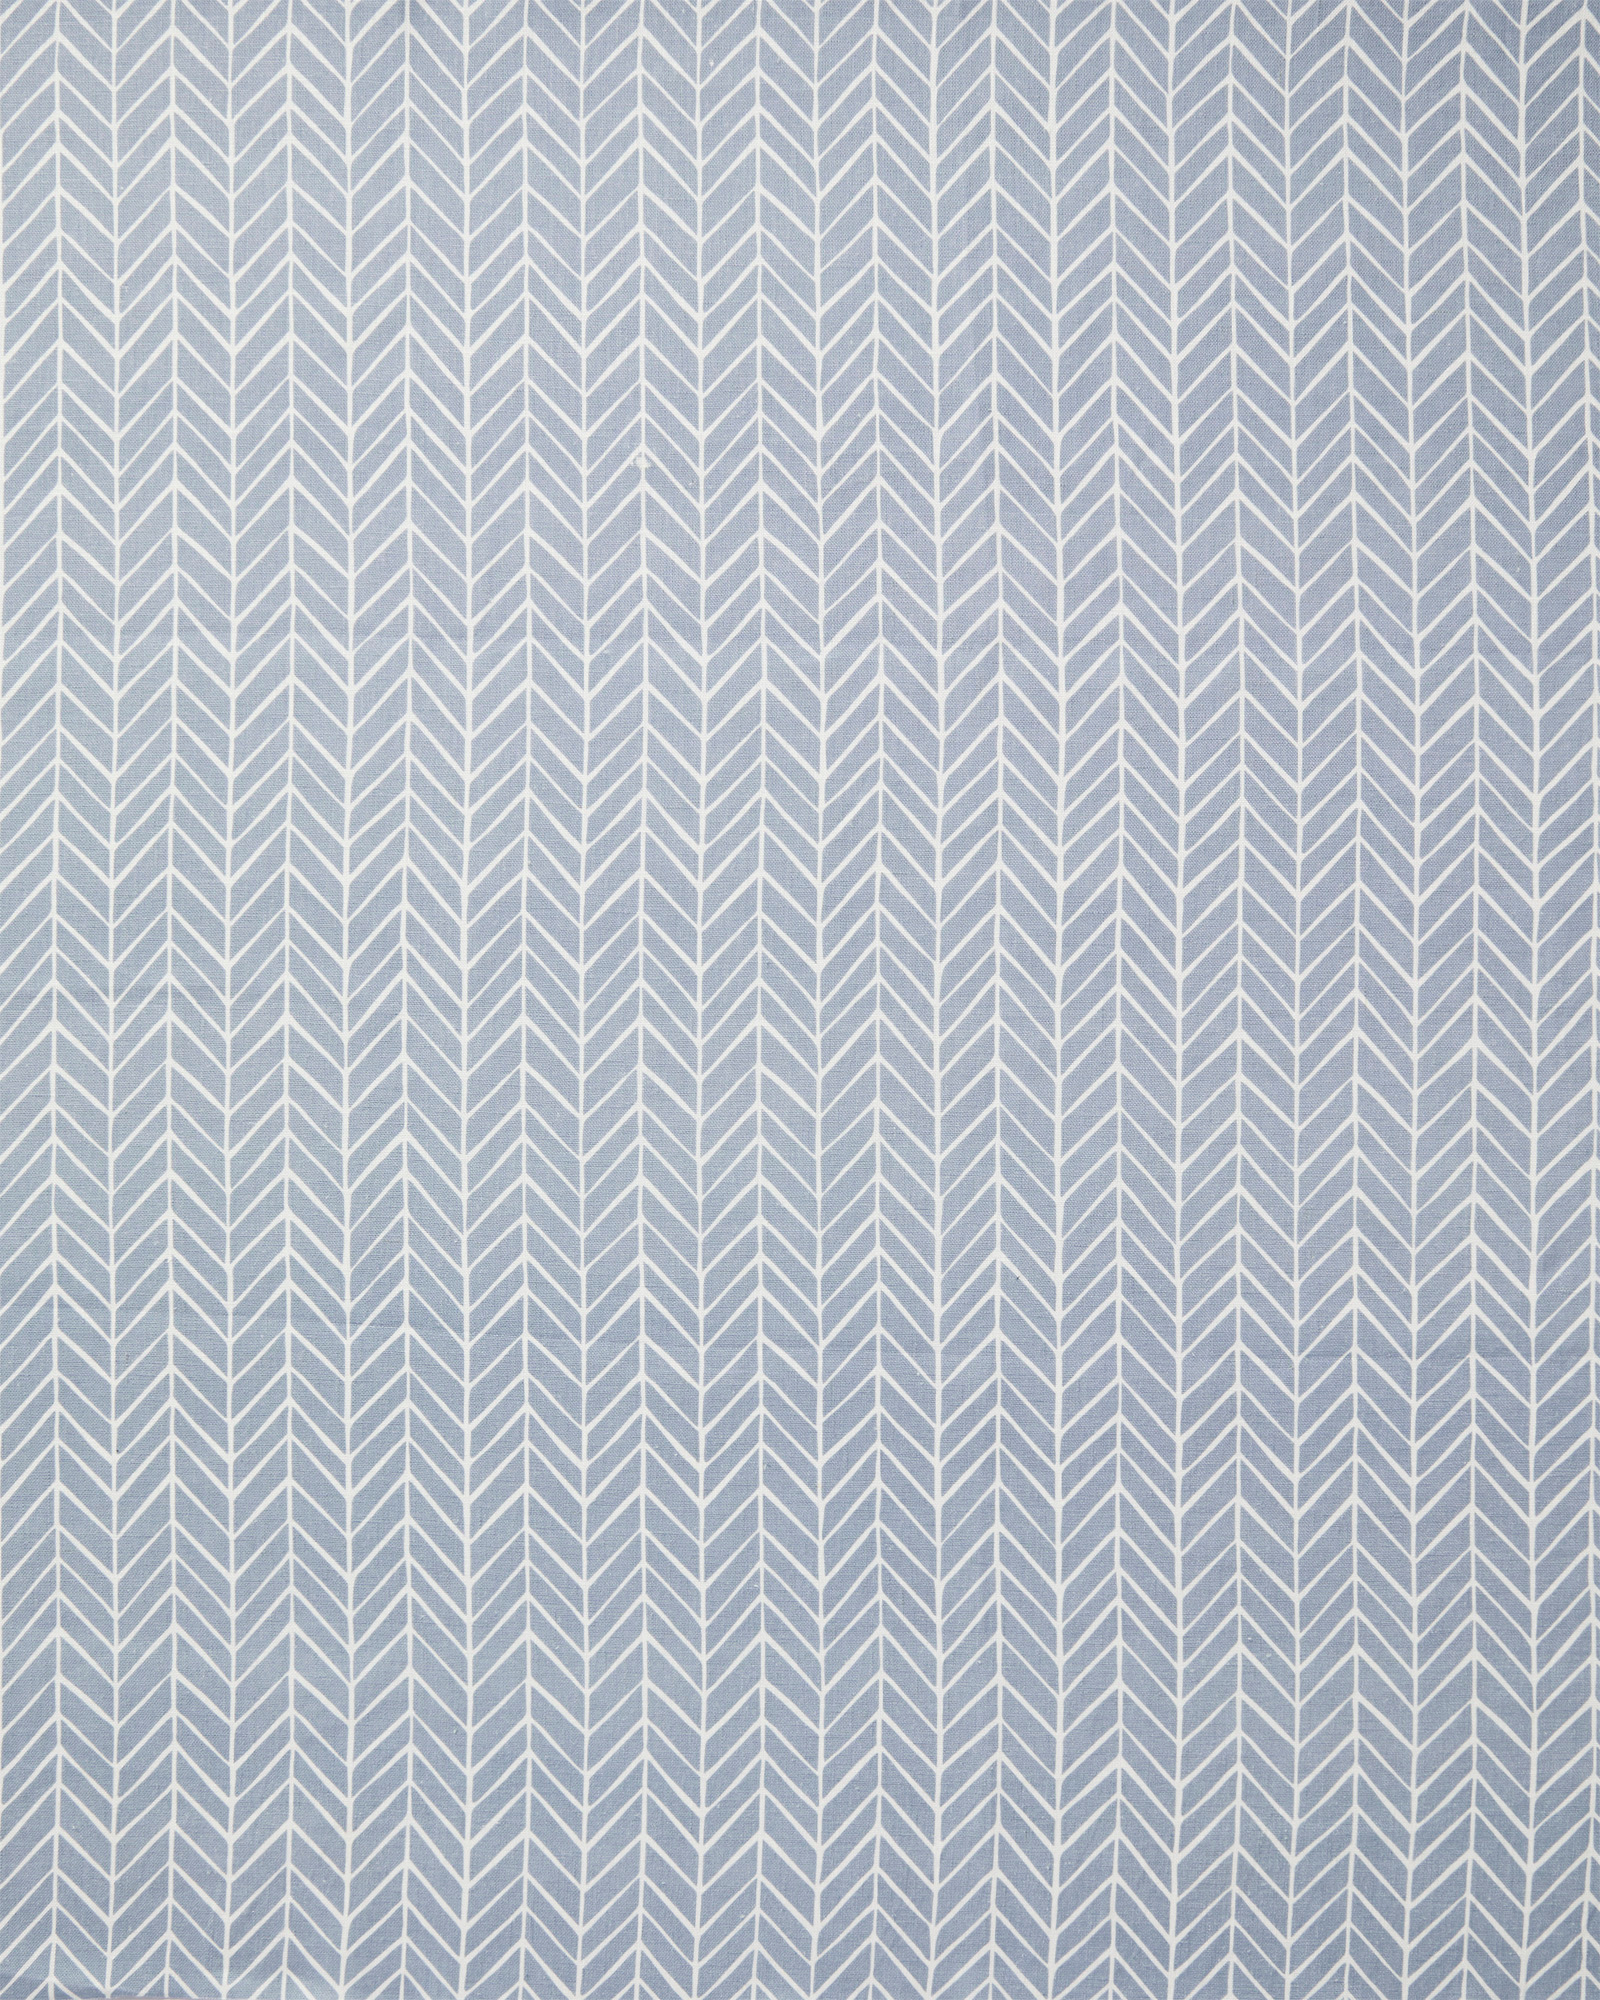 Fabric by the Yard - Herringbone Linen, Coastal Blue